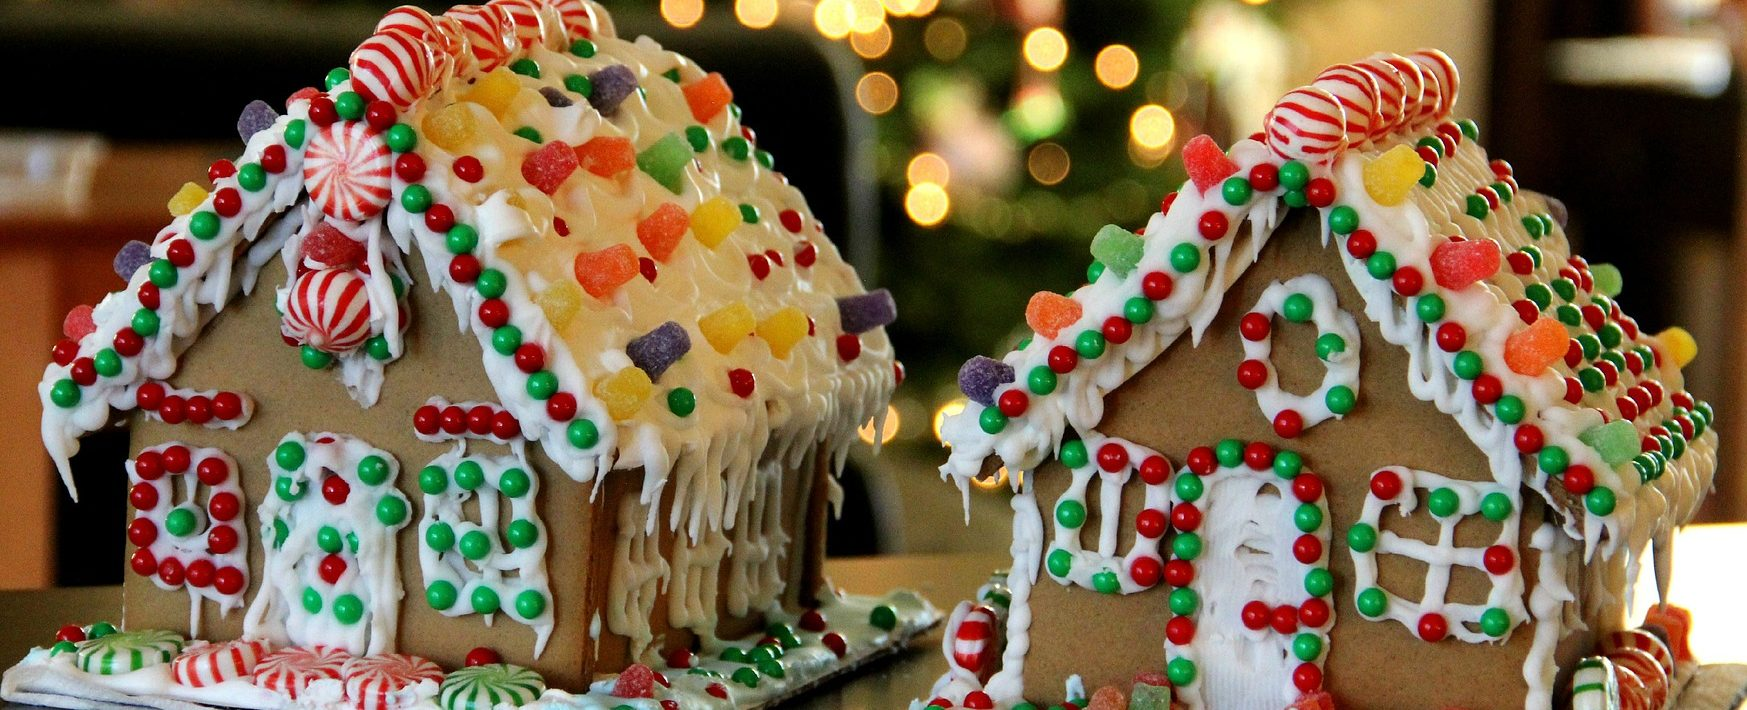 Two Gingerbread houses decorated with icing and sweets